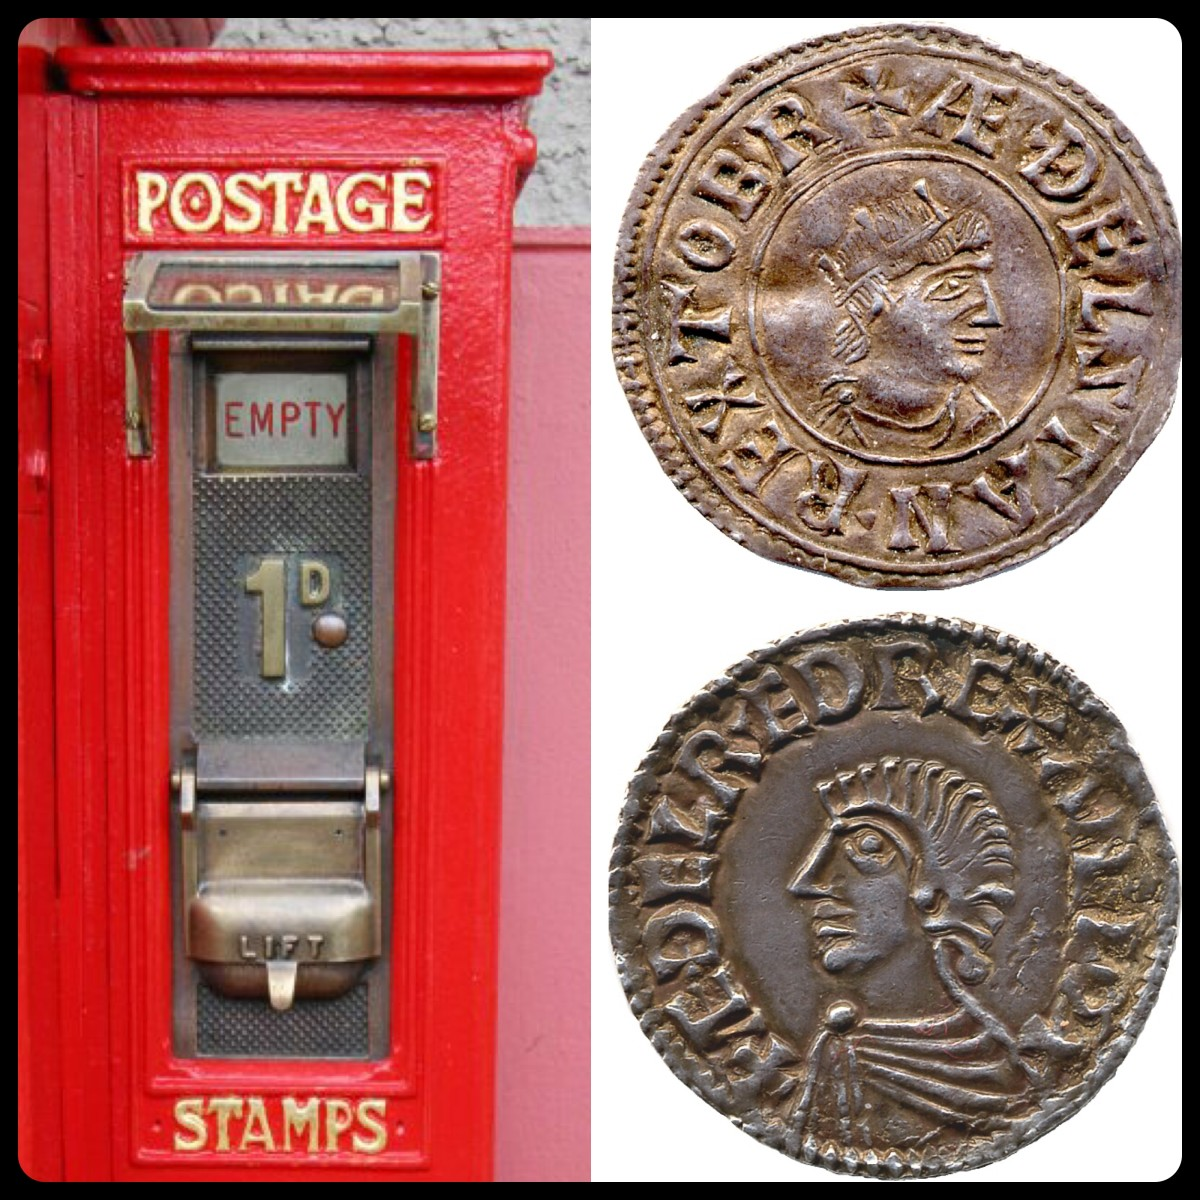 A penny stamp machine and two Anglo-Saxon pennies